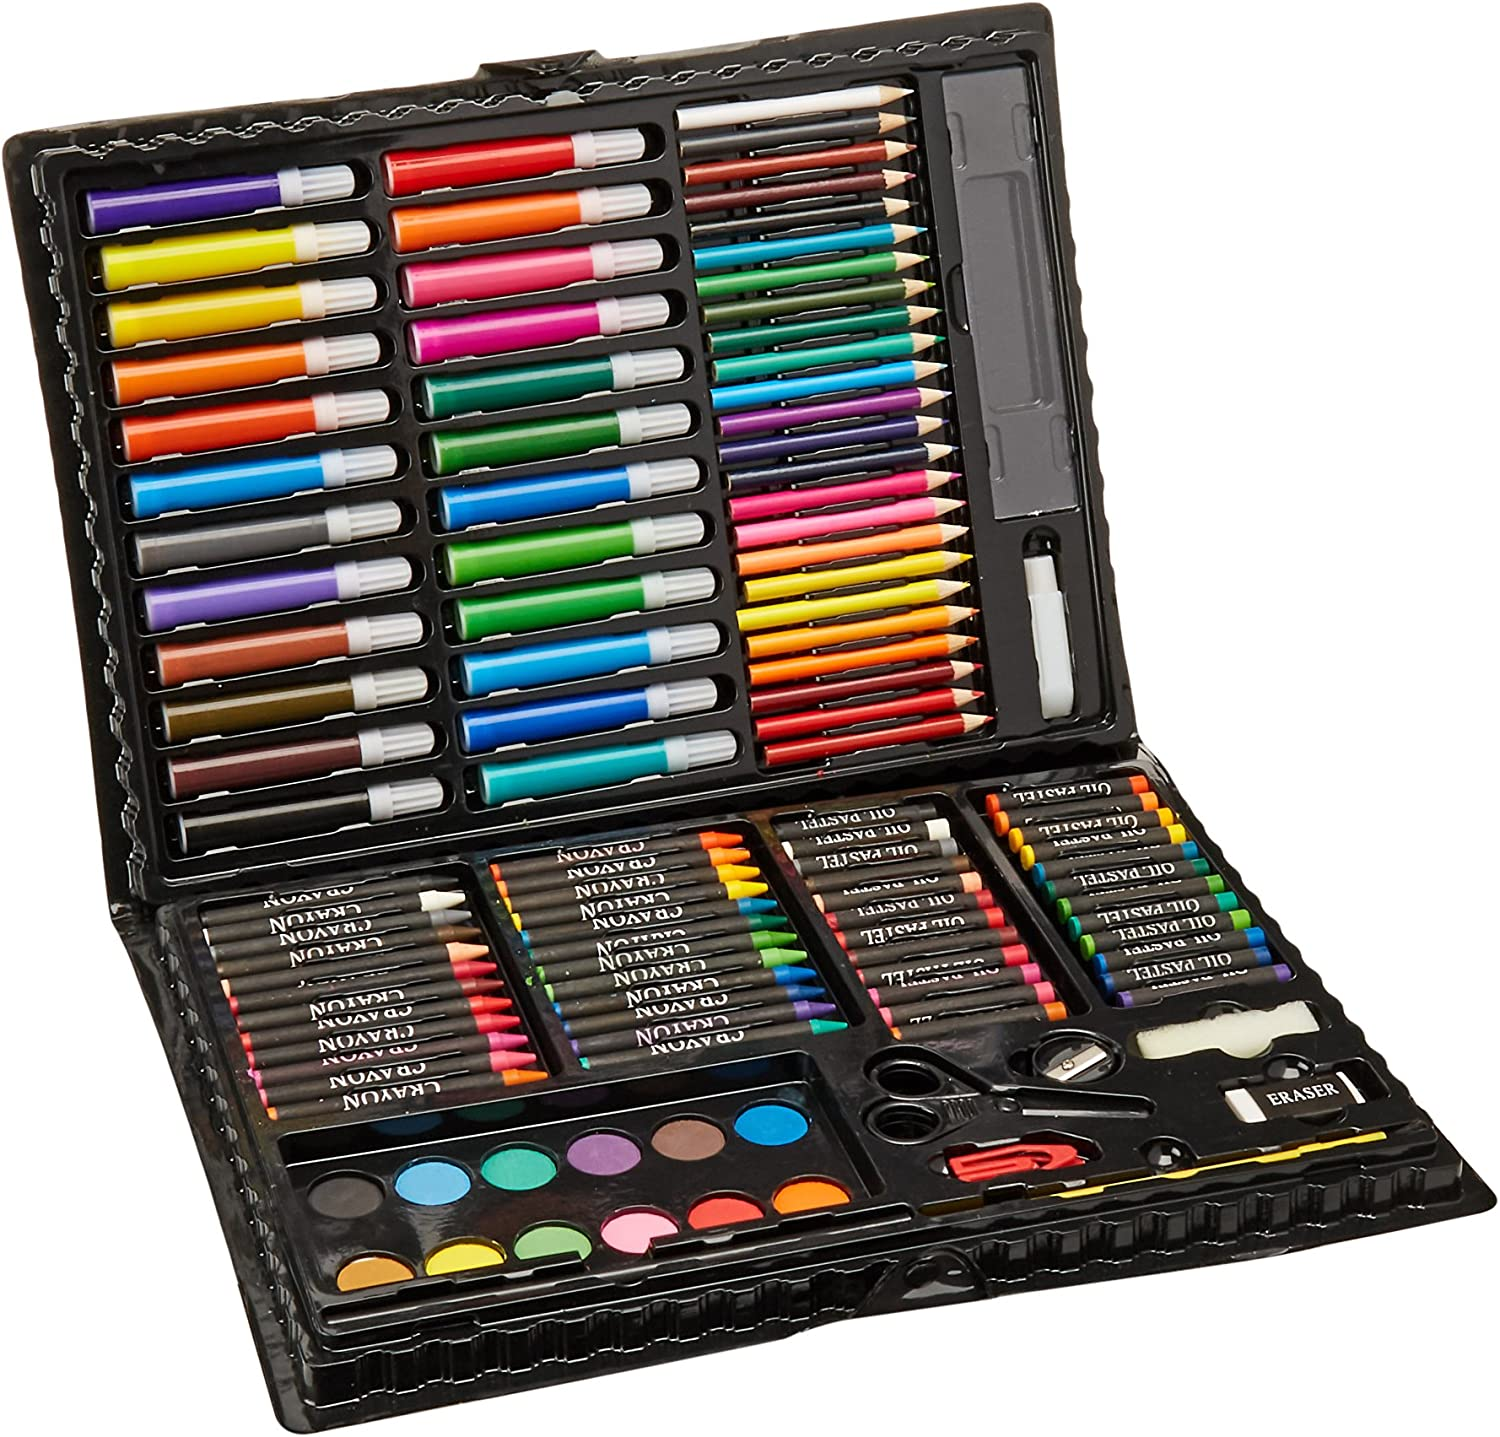 Amazon Com Darice 120 Piece Deluxe Art Set Art Supplies For Drawing Painting And More In A Plastic Case Makes A Great Gift For Children And Adults